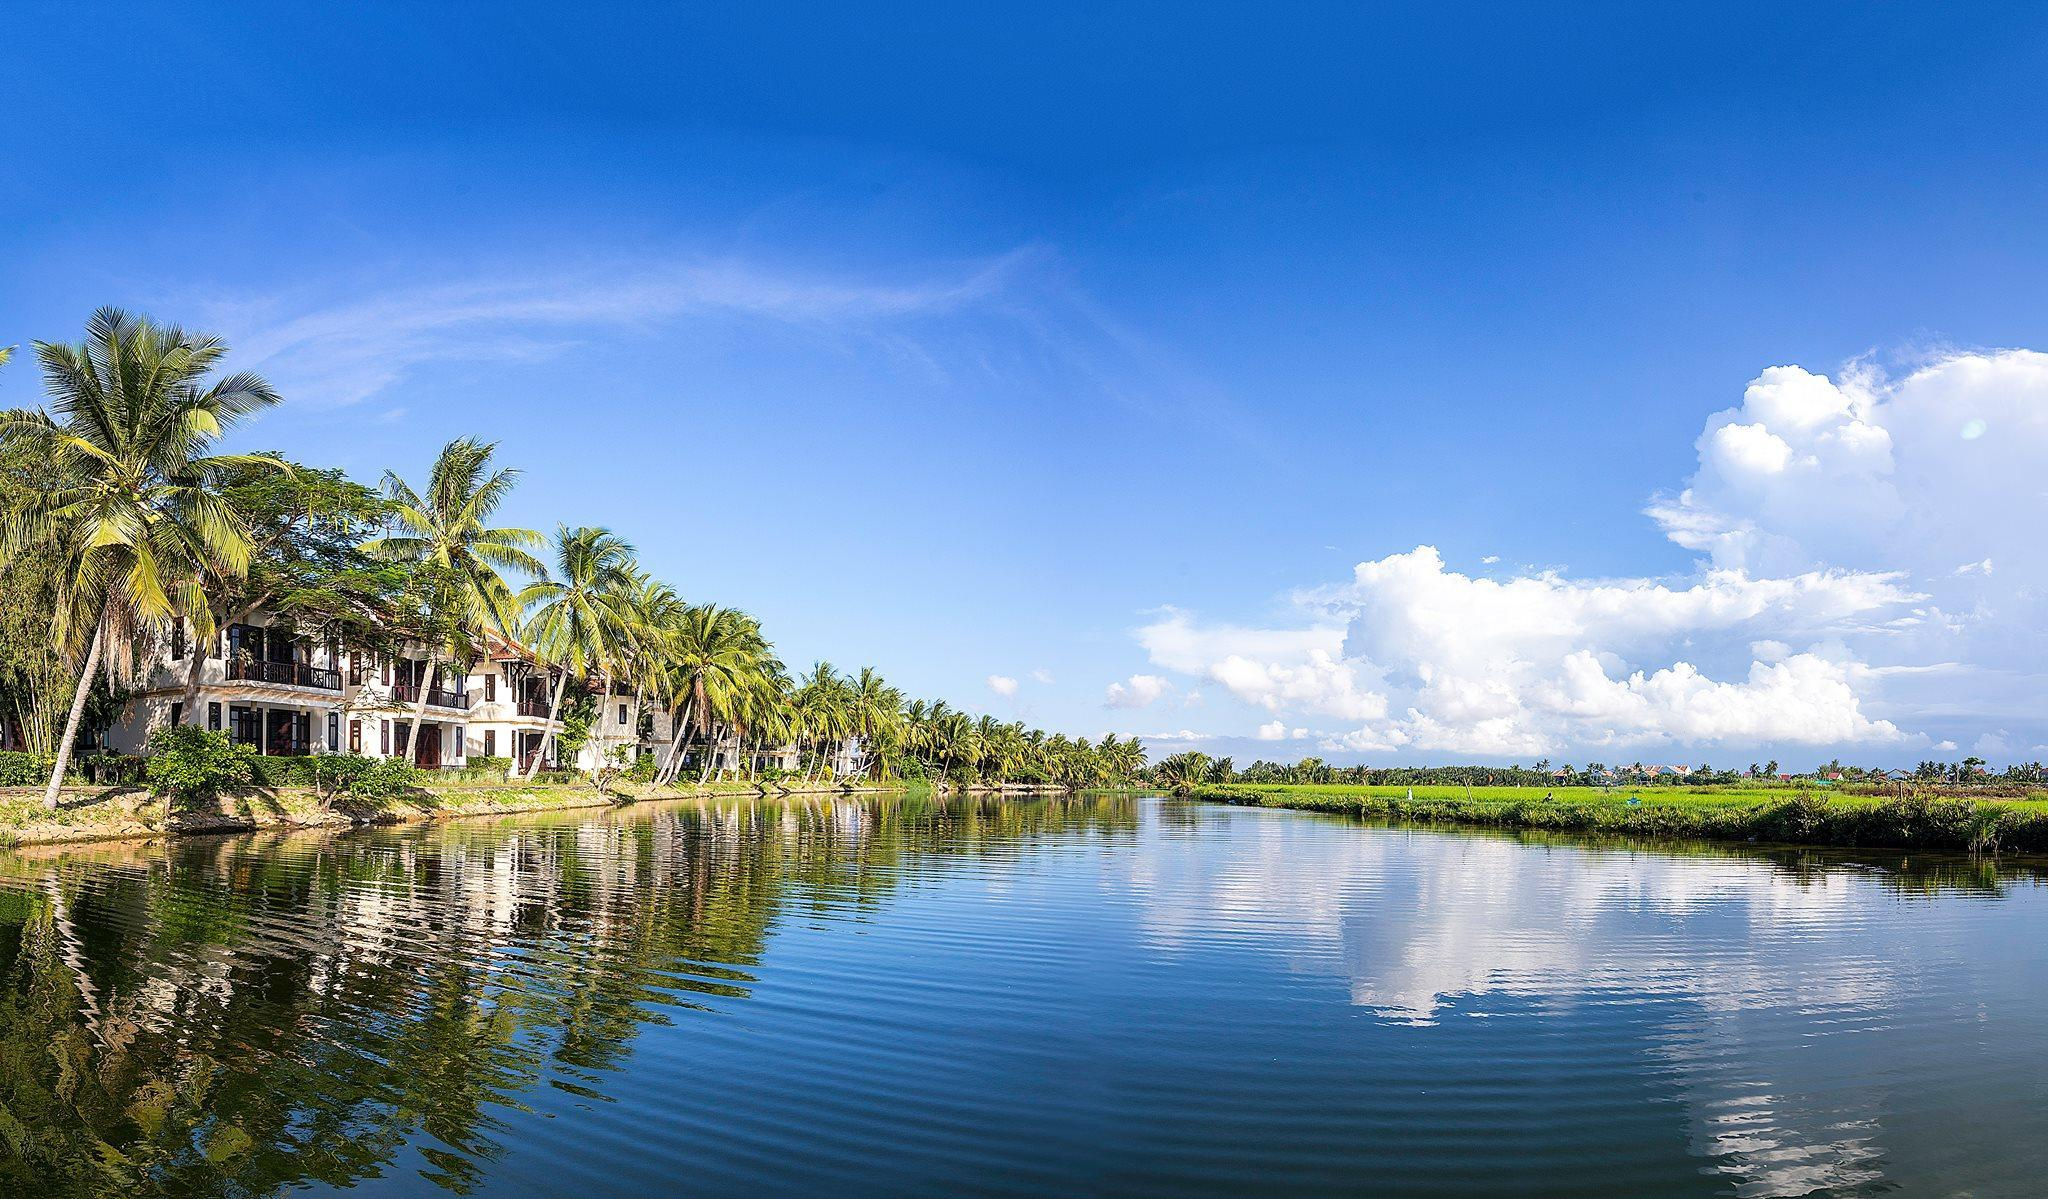 Hoi An Riverside Resort And Spa